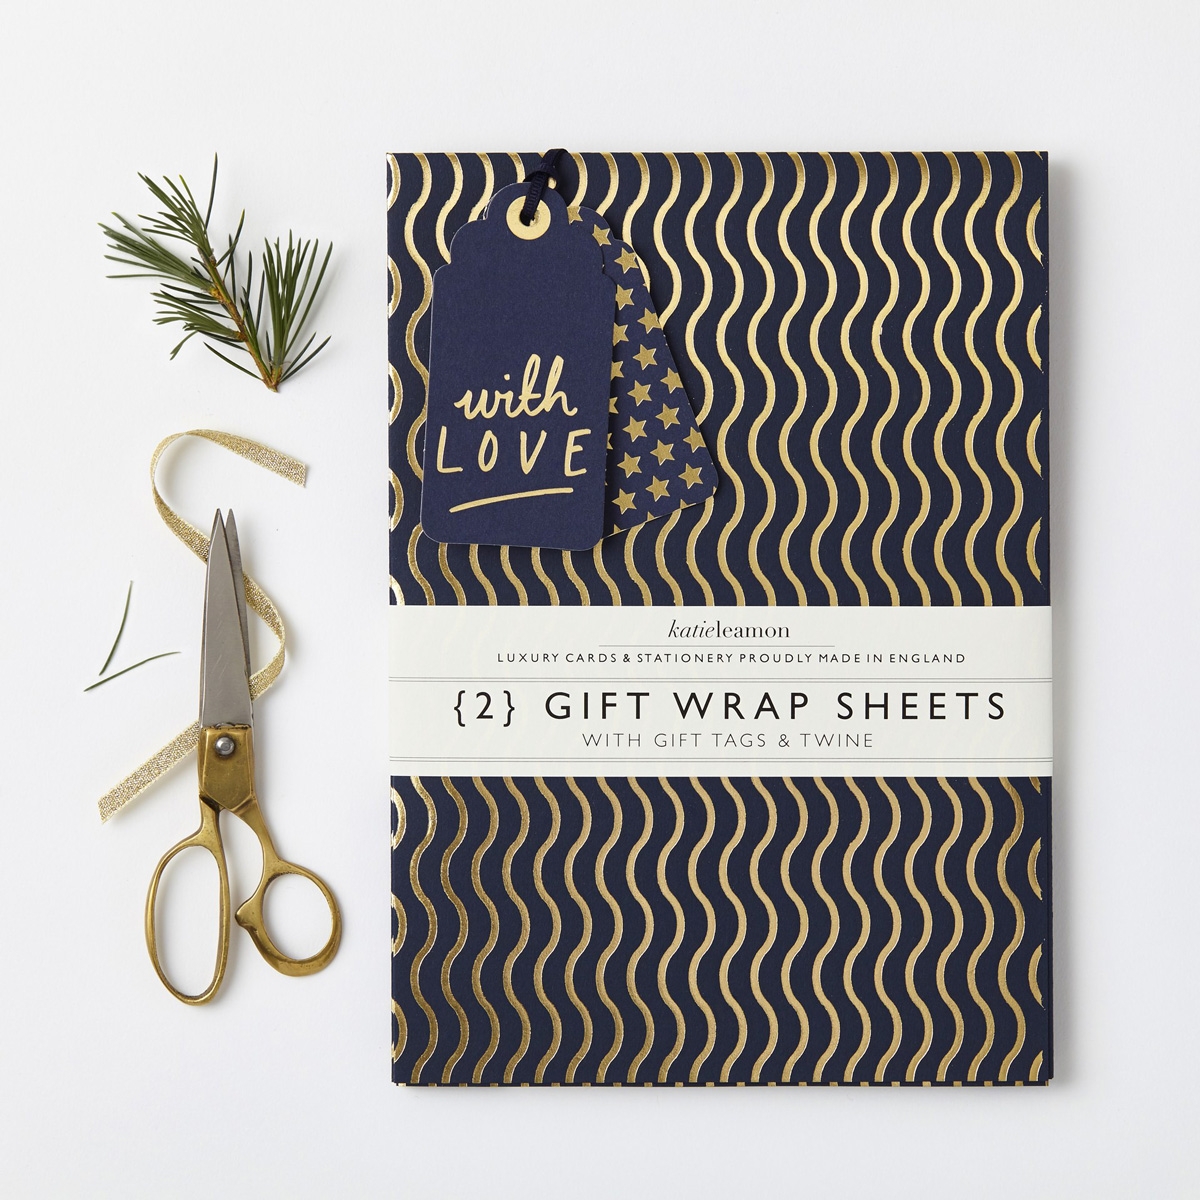 Katie Leamon luxury blue & gold waves gift wrap sheets